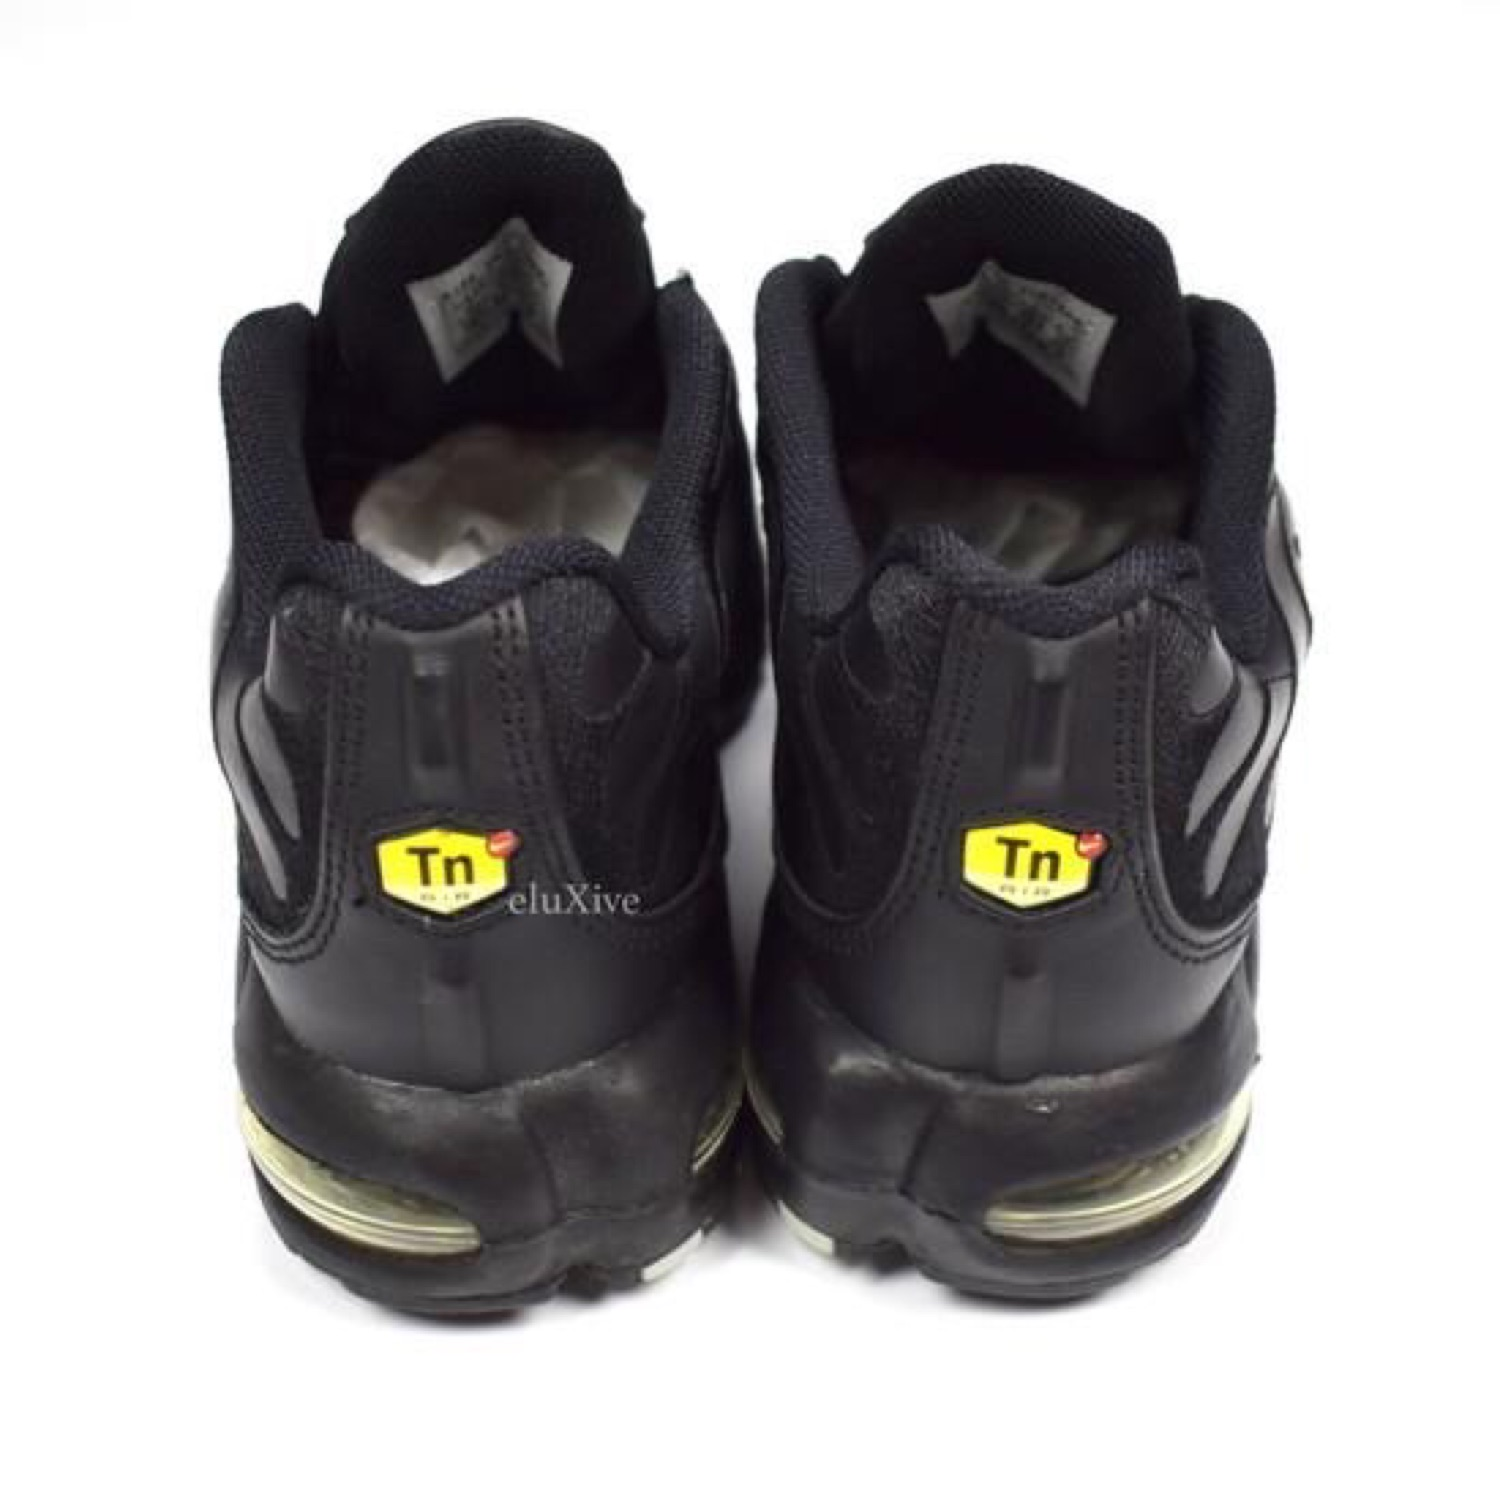 Nike Air Max Plus Tn Leather BlackSilver 2004 Ds